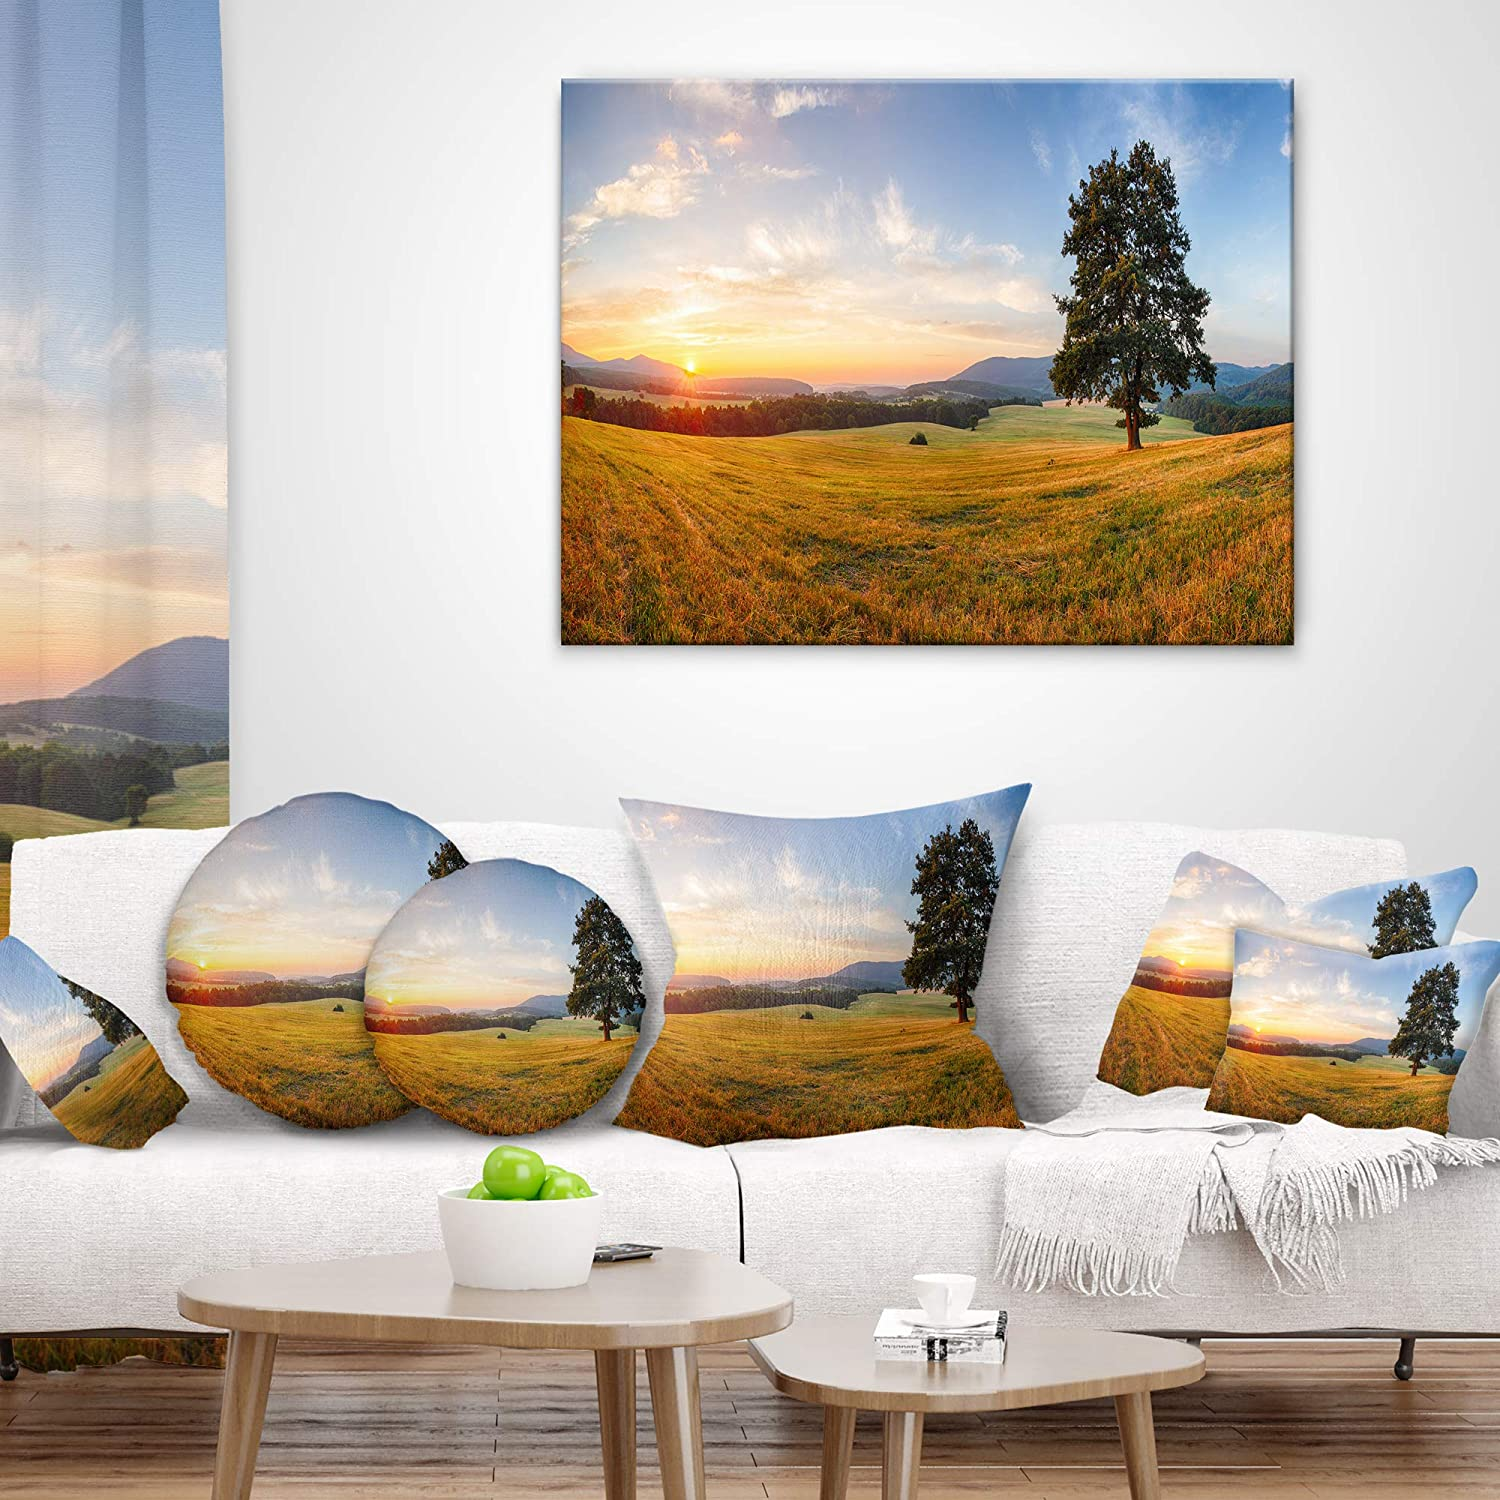 Insert Printed On Both Side Sofa Throw Pillow 16 Designart CU9656-16-16-C Lonely Tree on Meadow at Sunset Landscape Photography Round Cushion Cover for Living Room